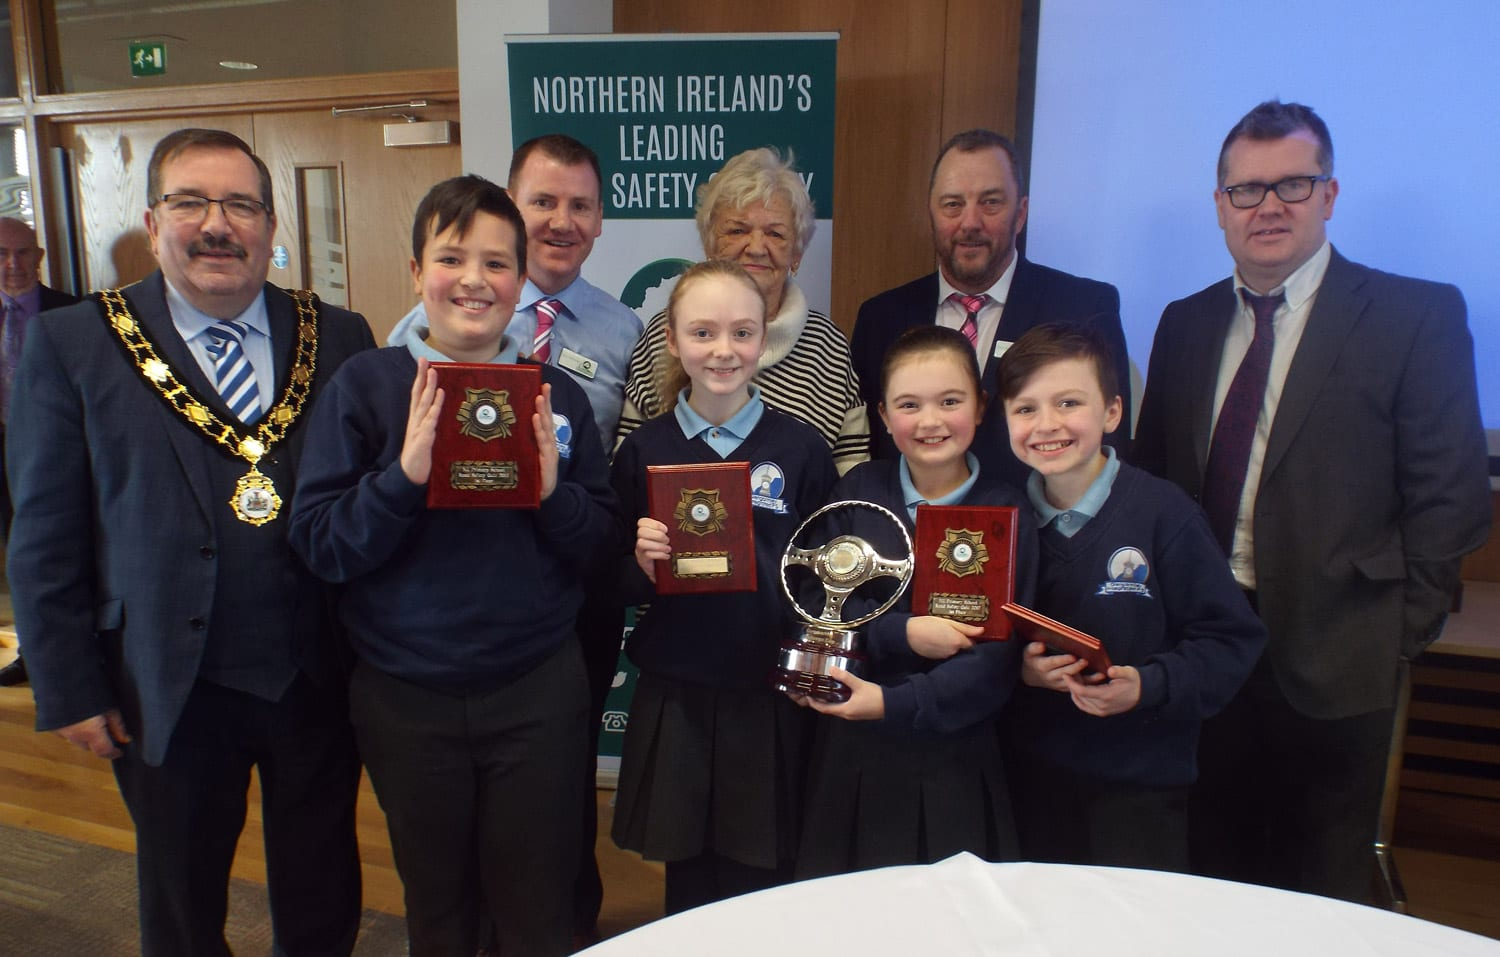 Antrim and Newtownabbey area schools qualify for NI Road Safety Quiz Final